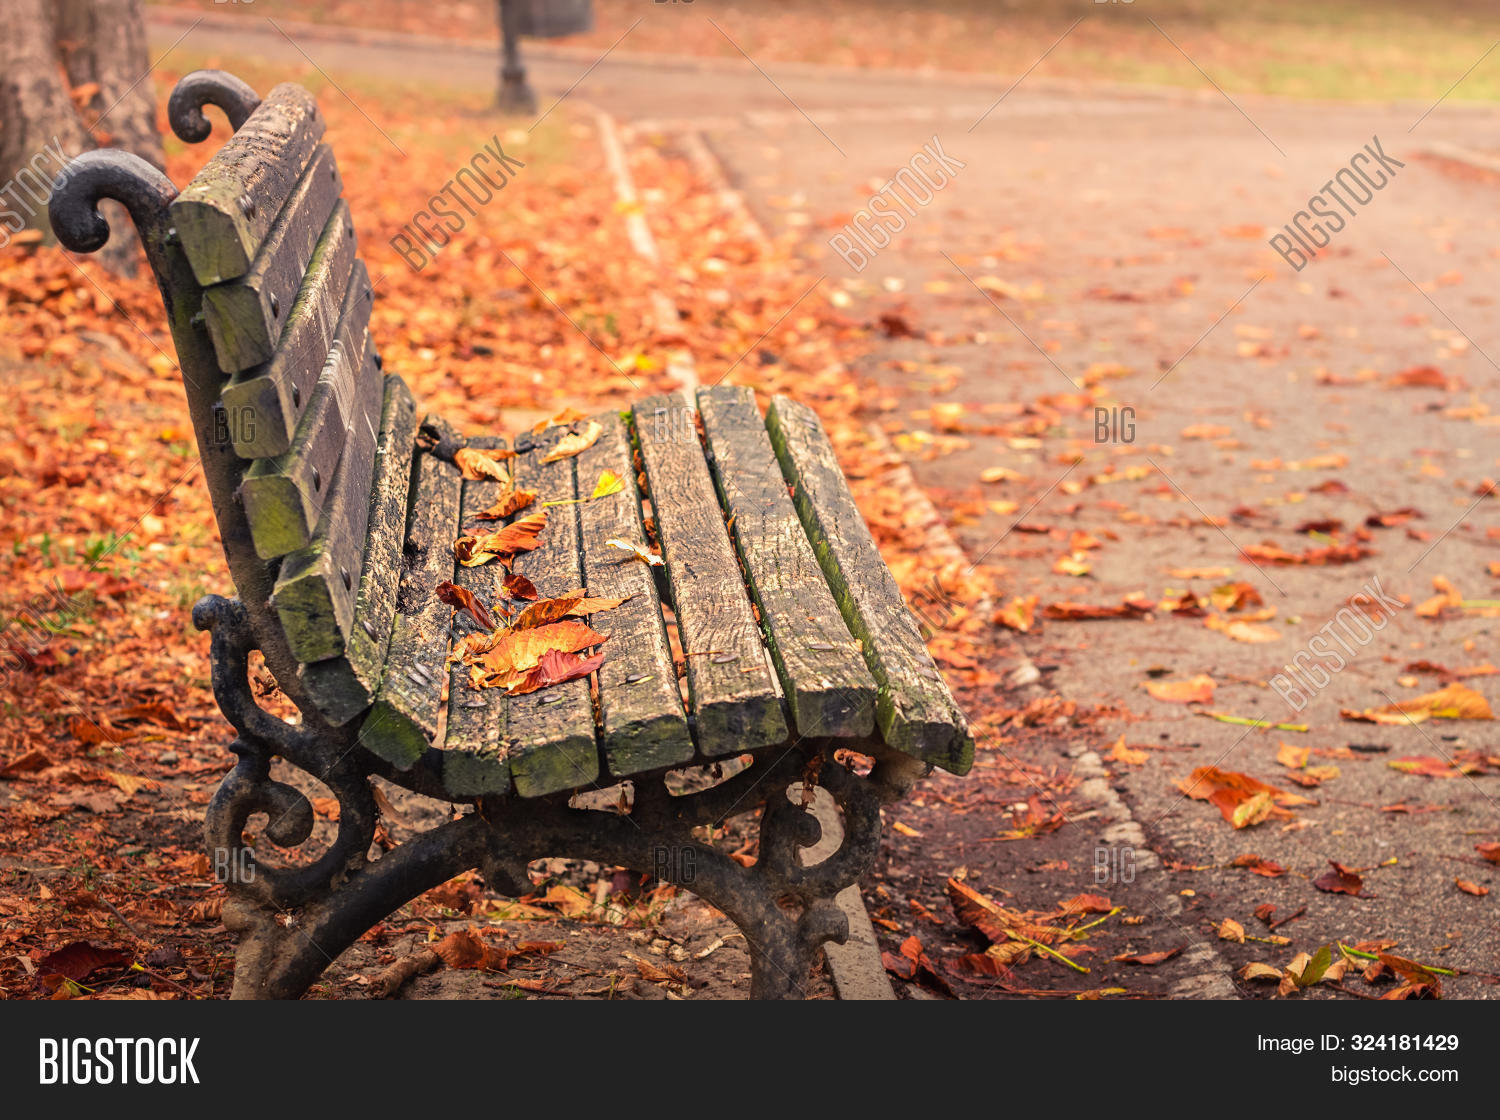 autumn,autumnal,background,beauty,brown,central,city,colorful,colors,colour,enjoyment,fall,focus,foliage,freshness,grass,idyllic,landscape,leaf,leaves,leisure,lush,meditating,nature,no,october,old,orange,outdoor,park,people,public,red,relaxation,rusty,season,seat,september,silence,solitude,tranquility,trees,urban,vintage,walk,walking,wooden,yellow